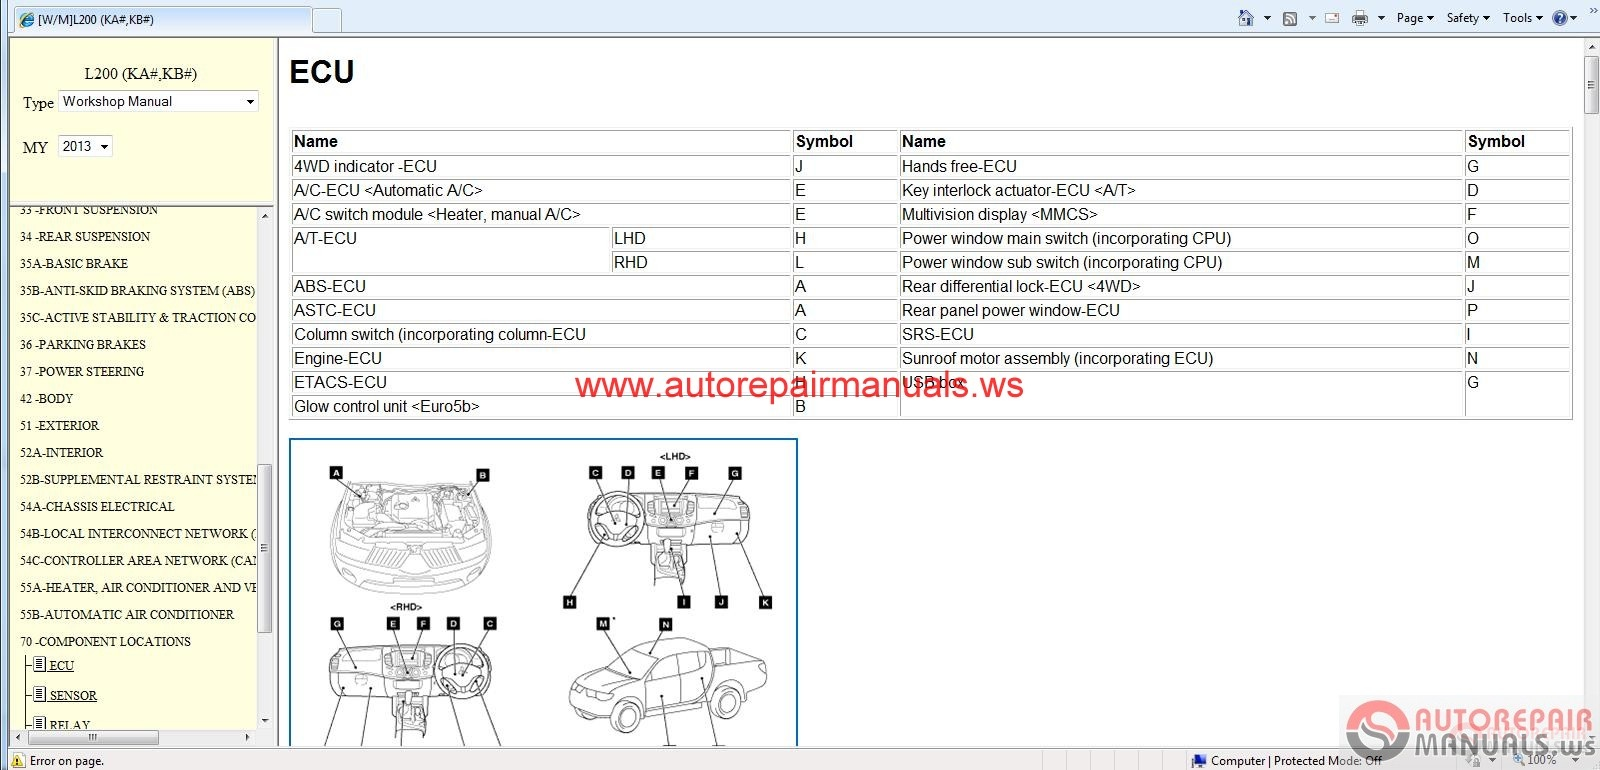 Mitsubishi L200 2013 Workshop Manual | Auto Repair Manual ...